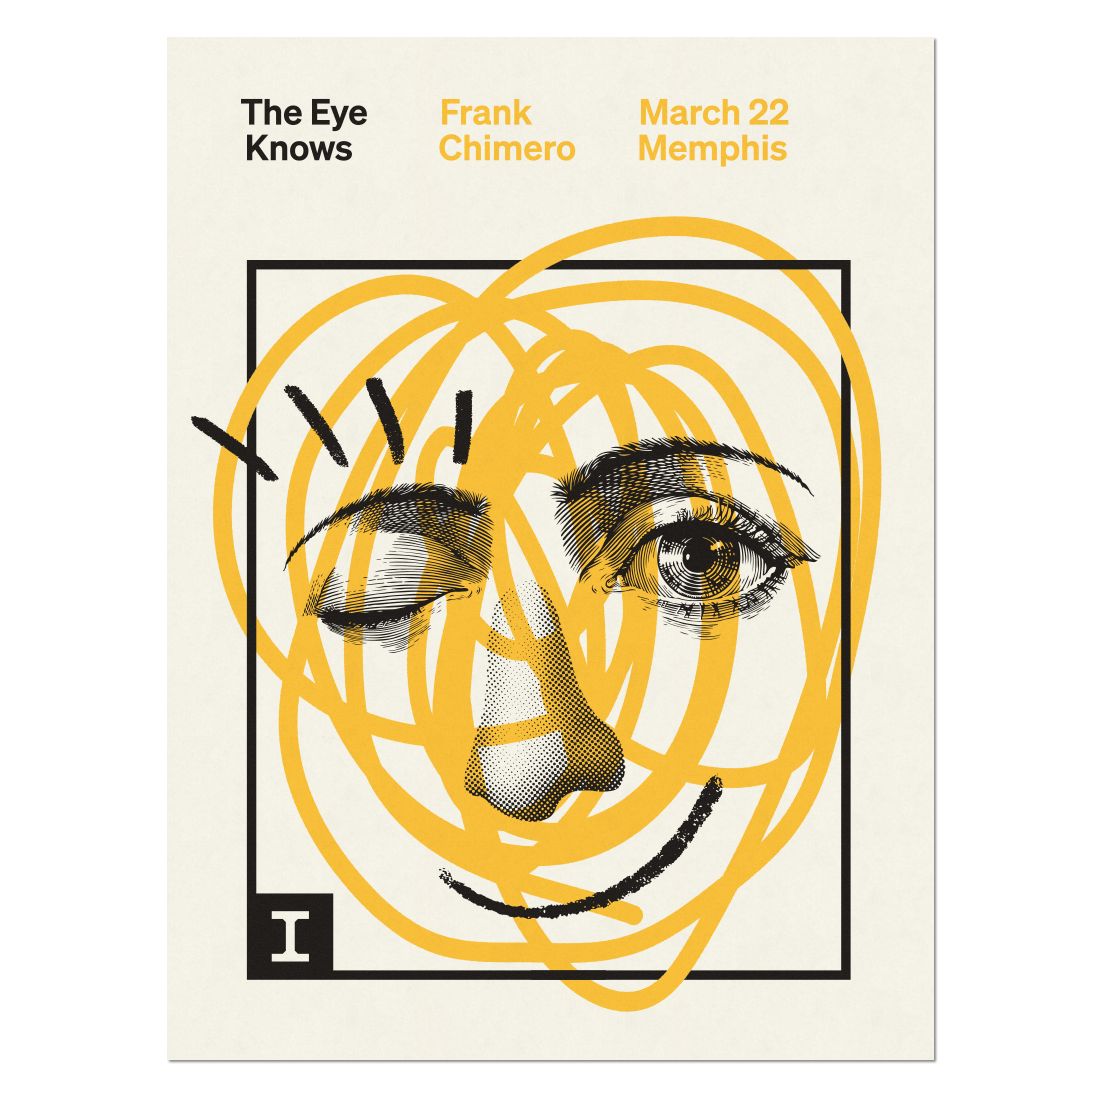 The Eye Knows poster by Frank Chimero